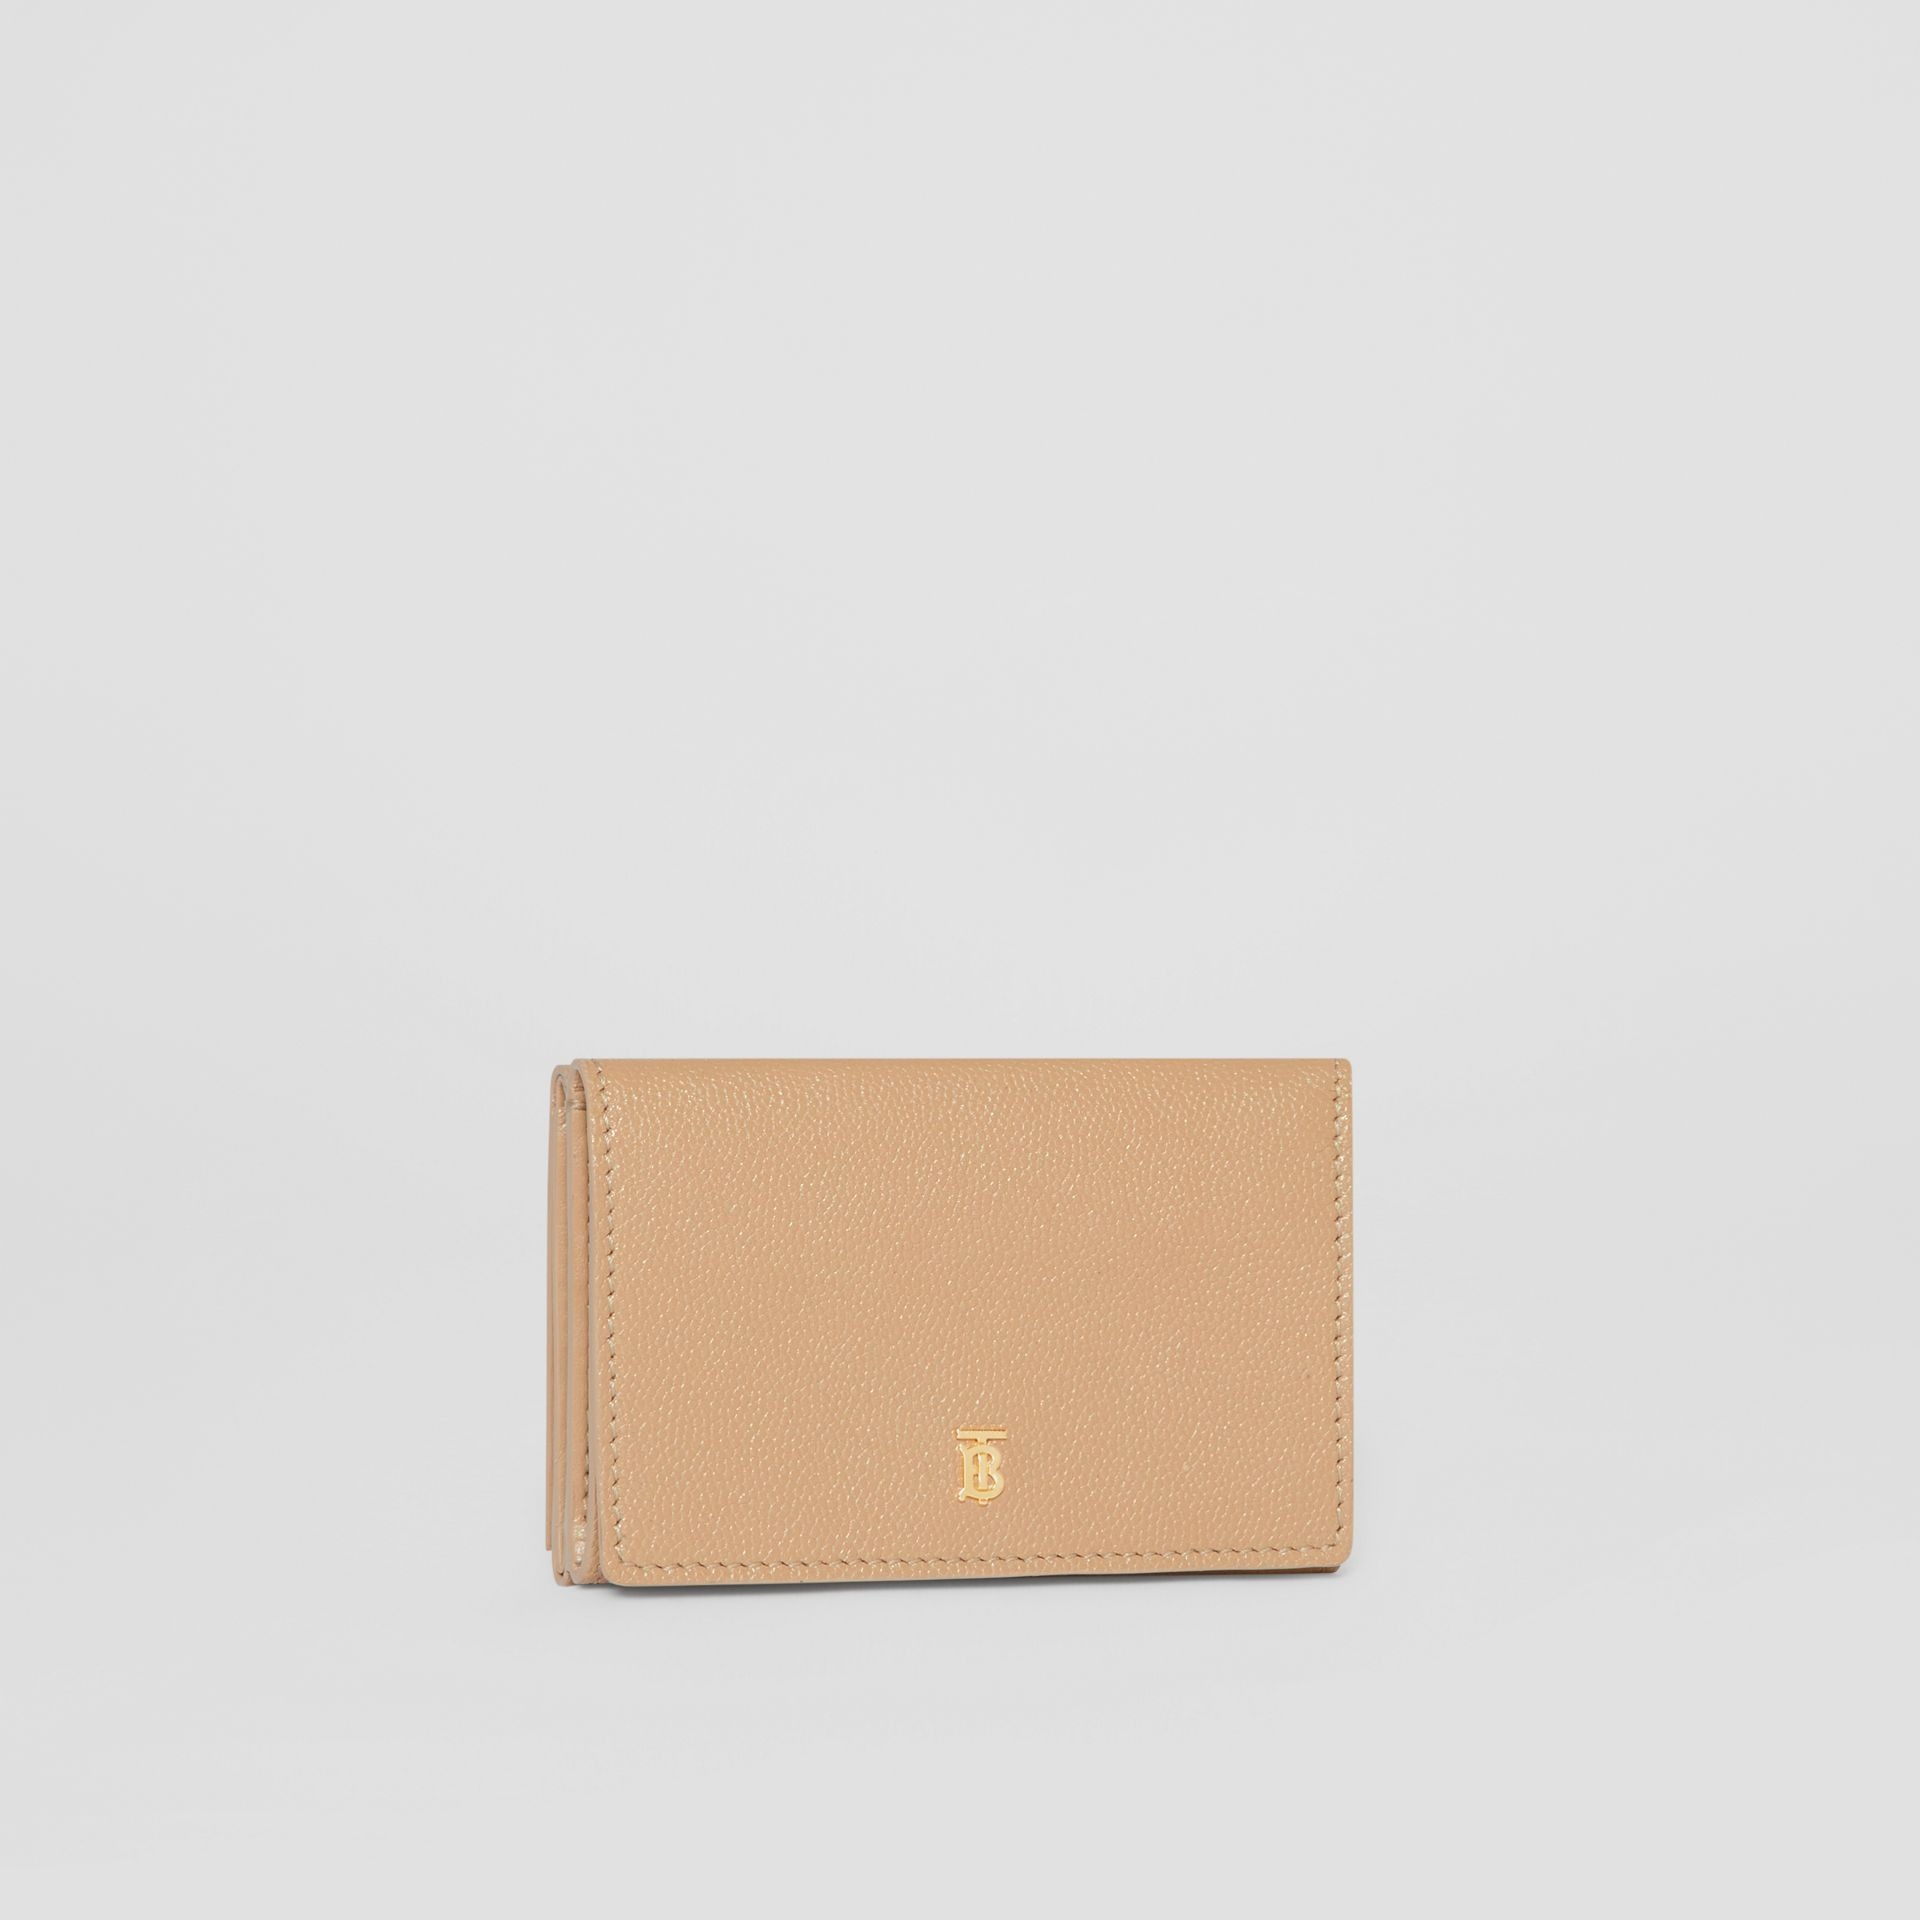 Small Grainy Leather Folding Wallet in Archive Beige - Women | Burberry - gallery image 3